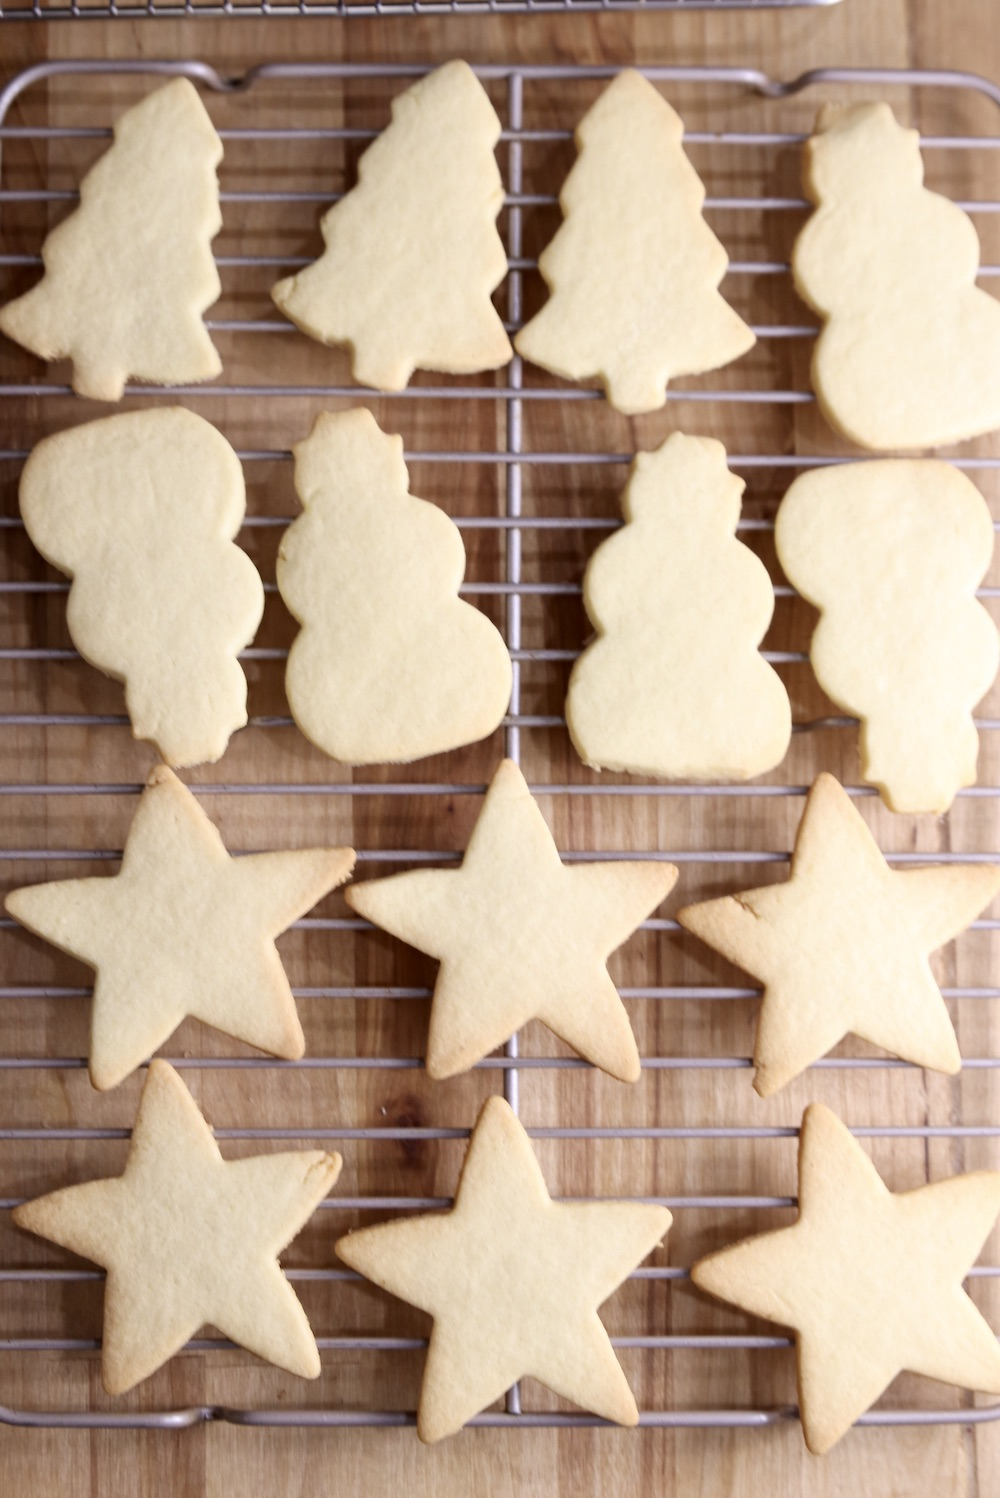 Wire rack of cut out sugar cookies. Trees, snowmen, stars.